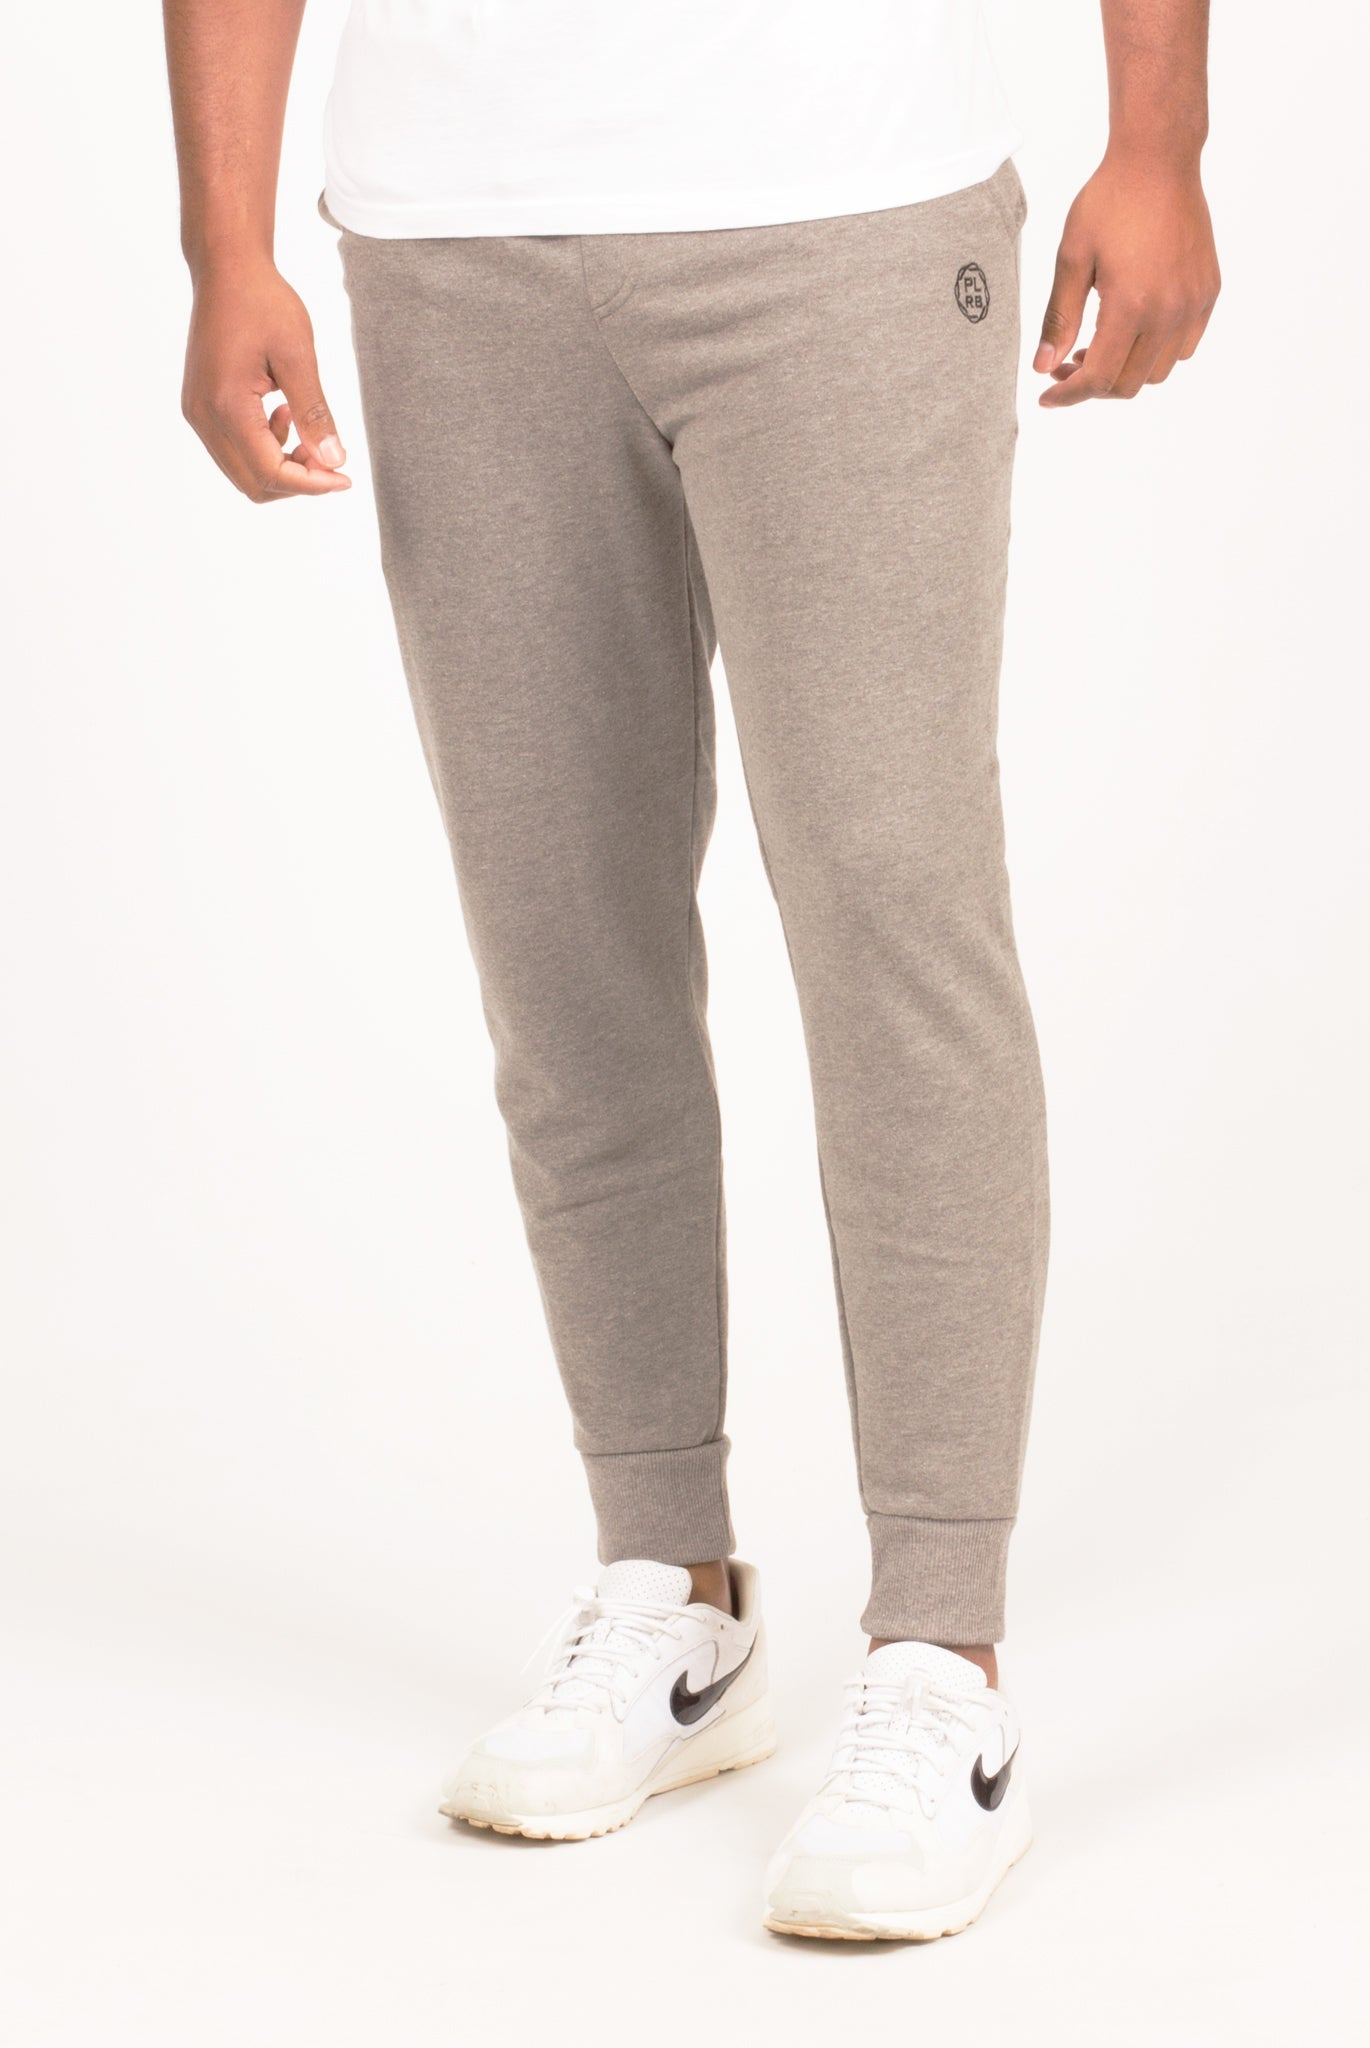 PLRB FLEX HEATHER GREY JOGGERS | Poor Little Rich Boy Clothing